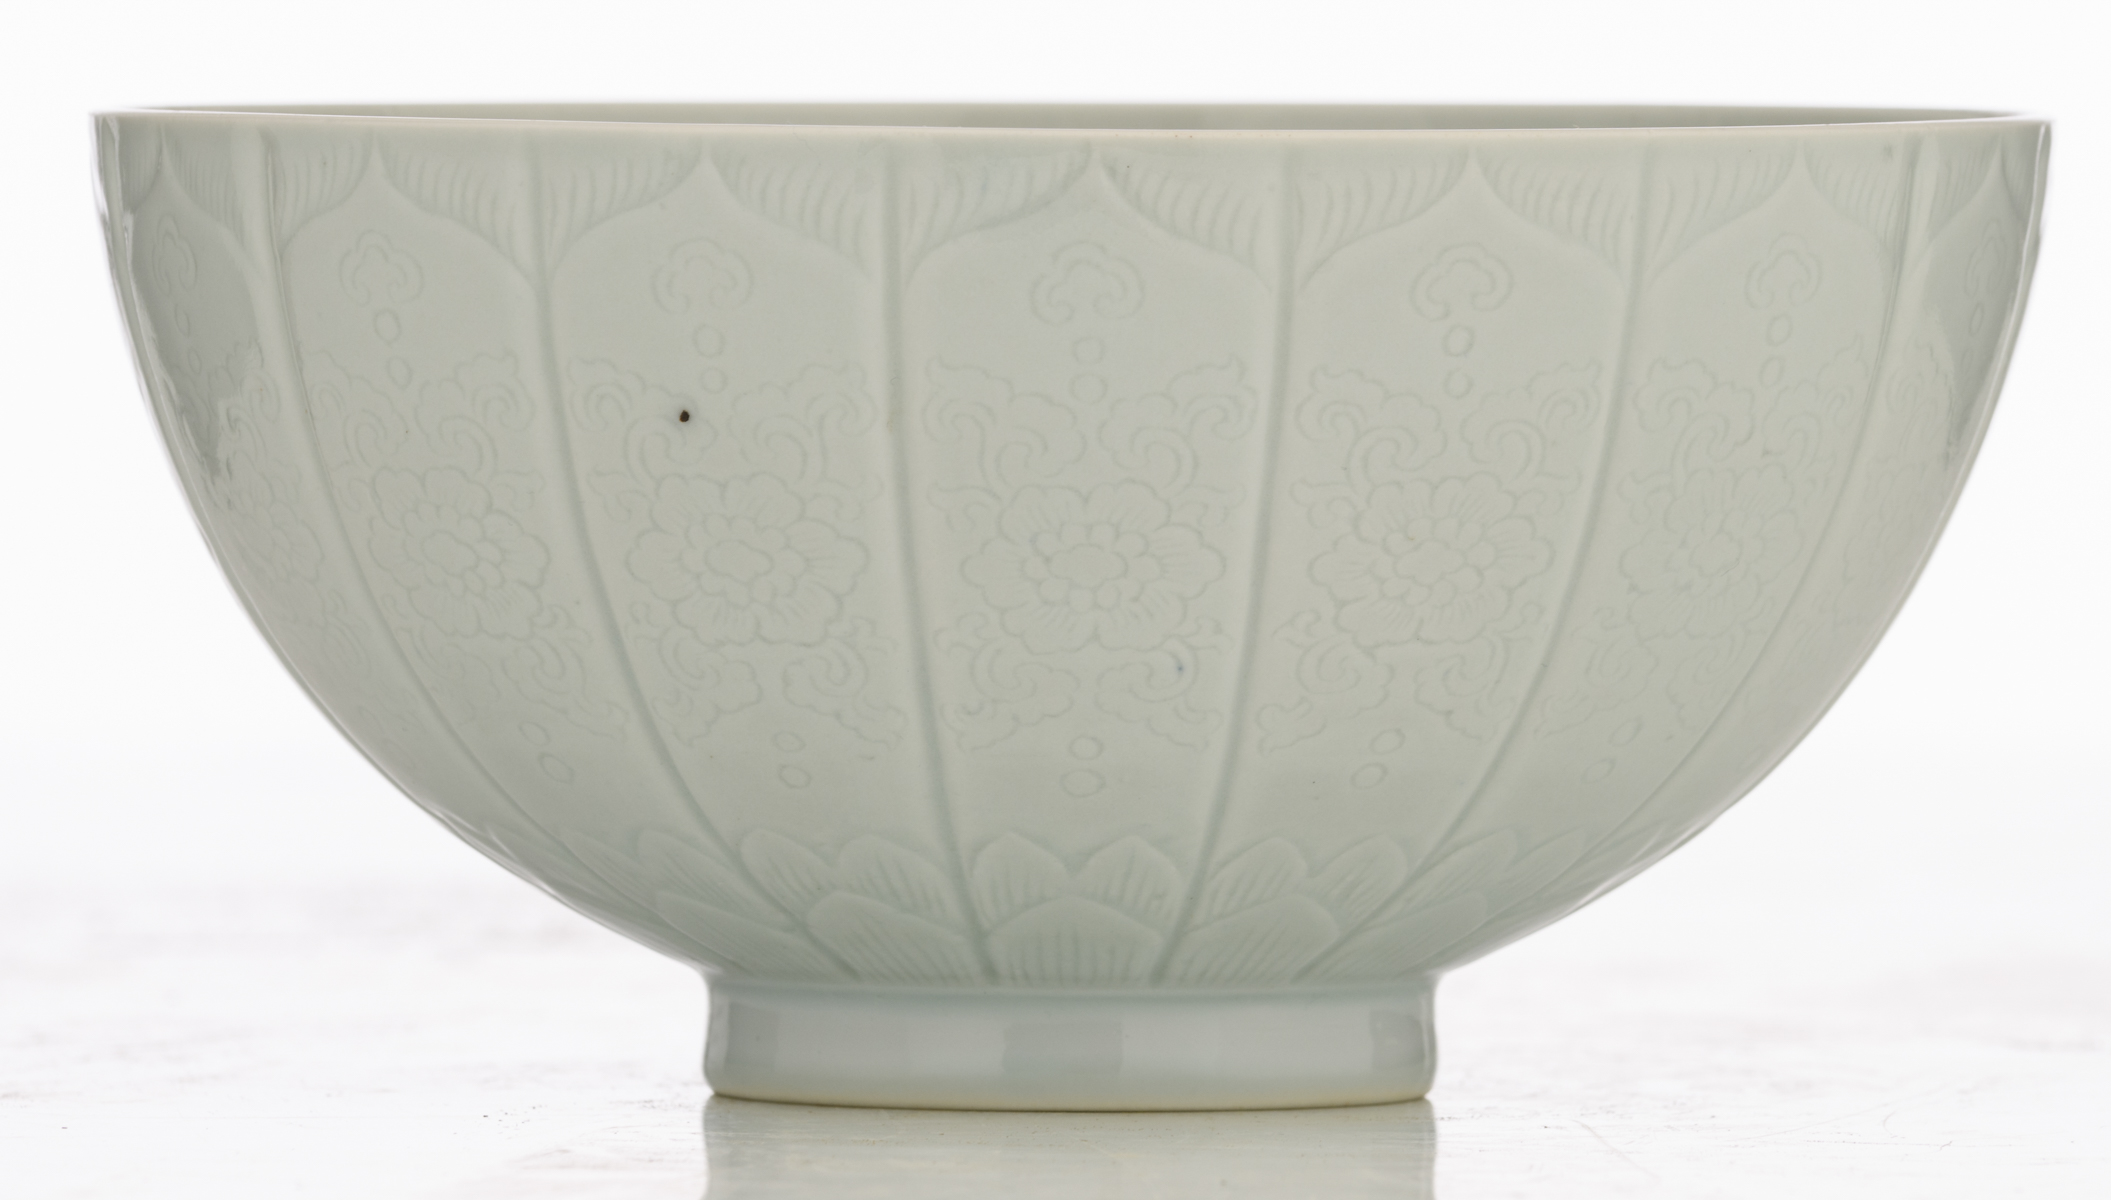 Lot 27 - A Chinese relief decorated white glazed 'lotus' bowl with incised lotus flower design, the